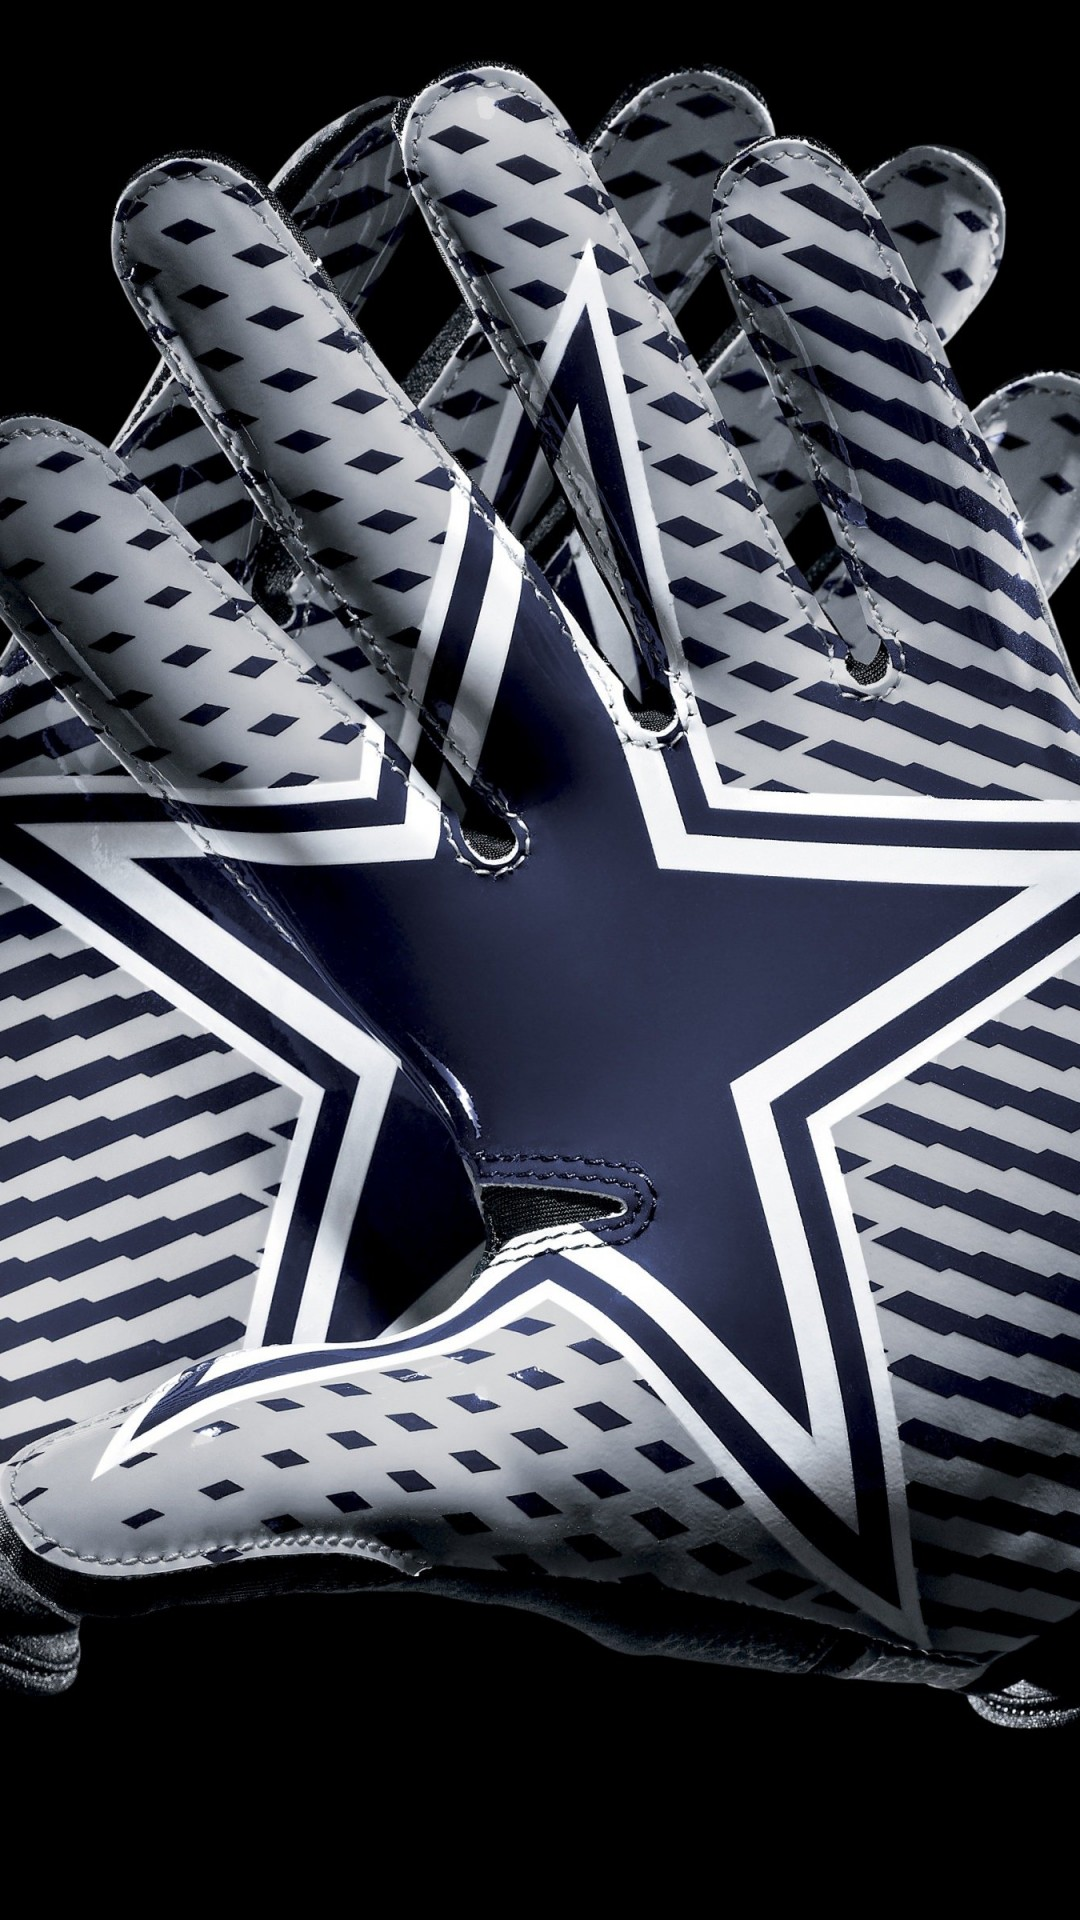 Dallas Cowboys Gloves Wallpaper for SONY Xperia Z1